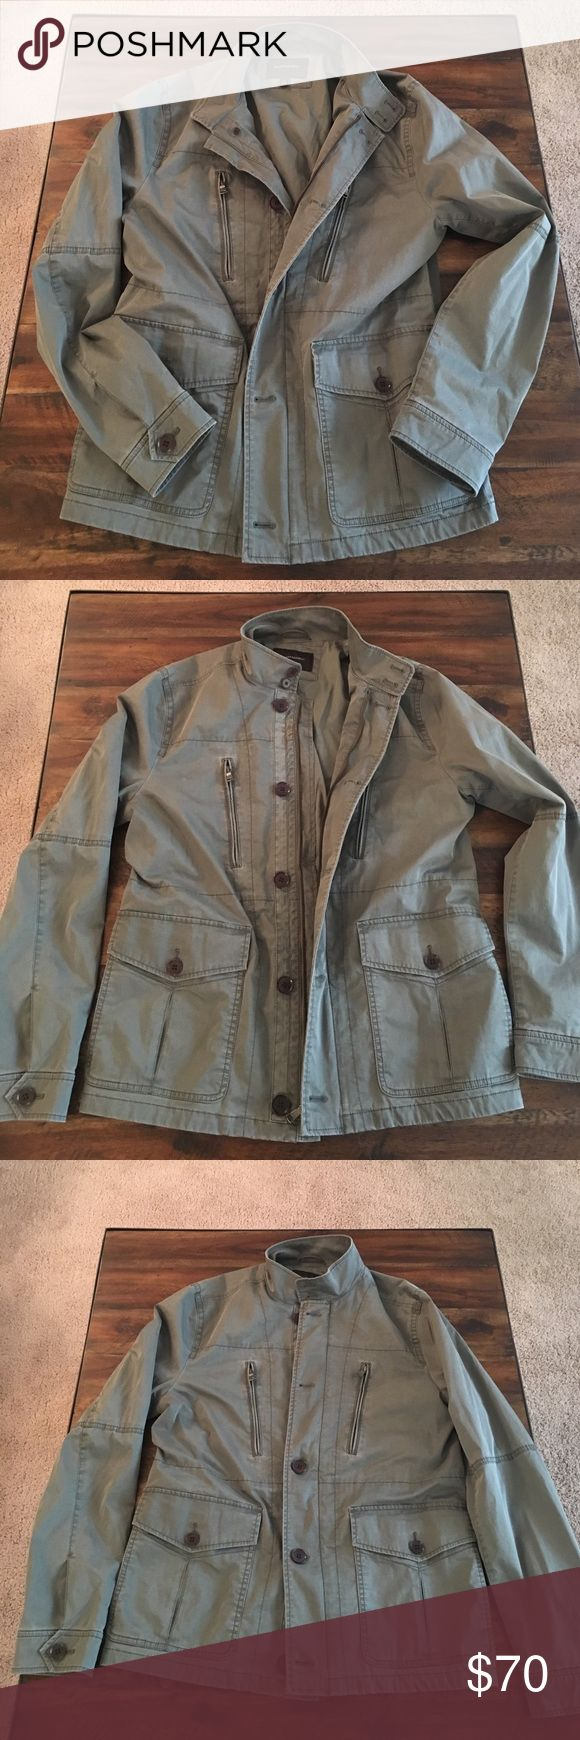 Banana Republic Utility Jacket Banana Republic Utility Jacket. NWOT. Size medium, though it's an oversized fit. I'm a large and could wear it but not zip a the way. Soft olive color, great for the military trend. Banana Republic Jackets & Coats Utility Jackets